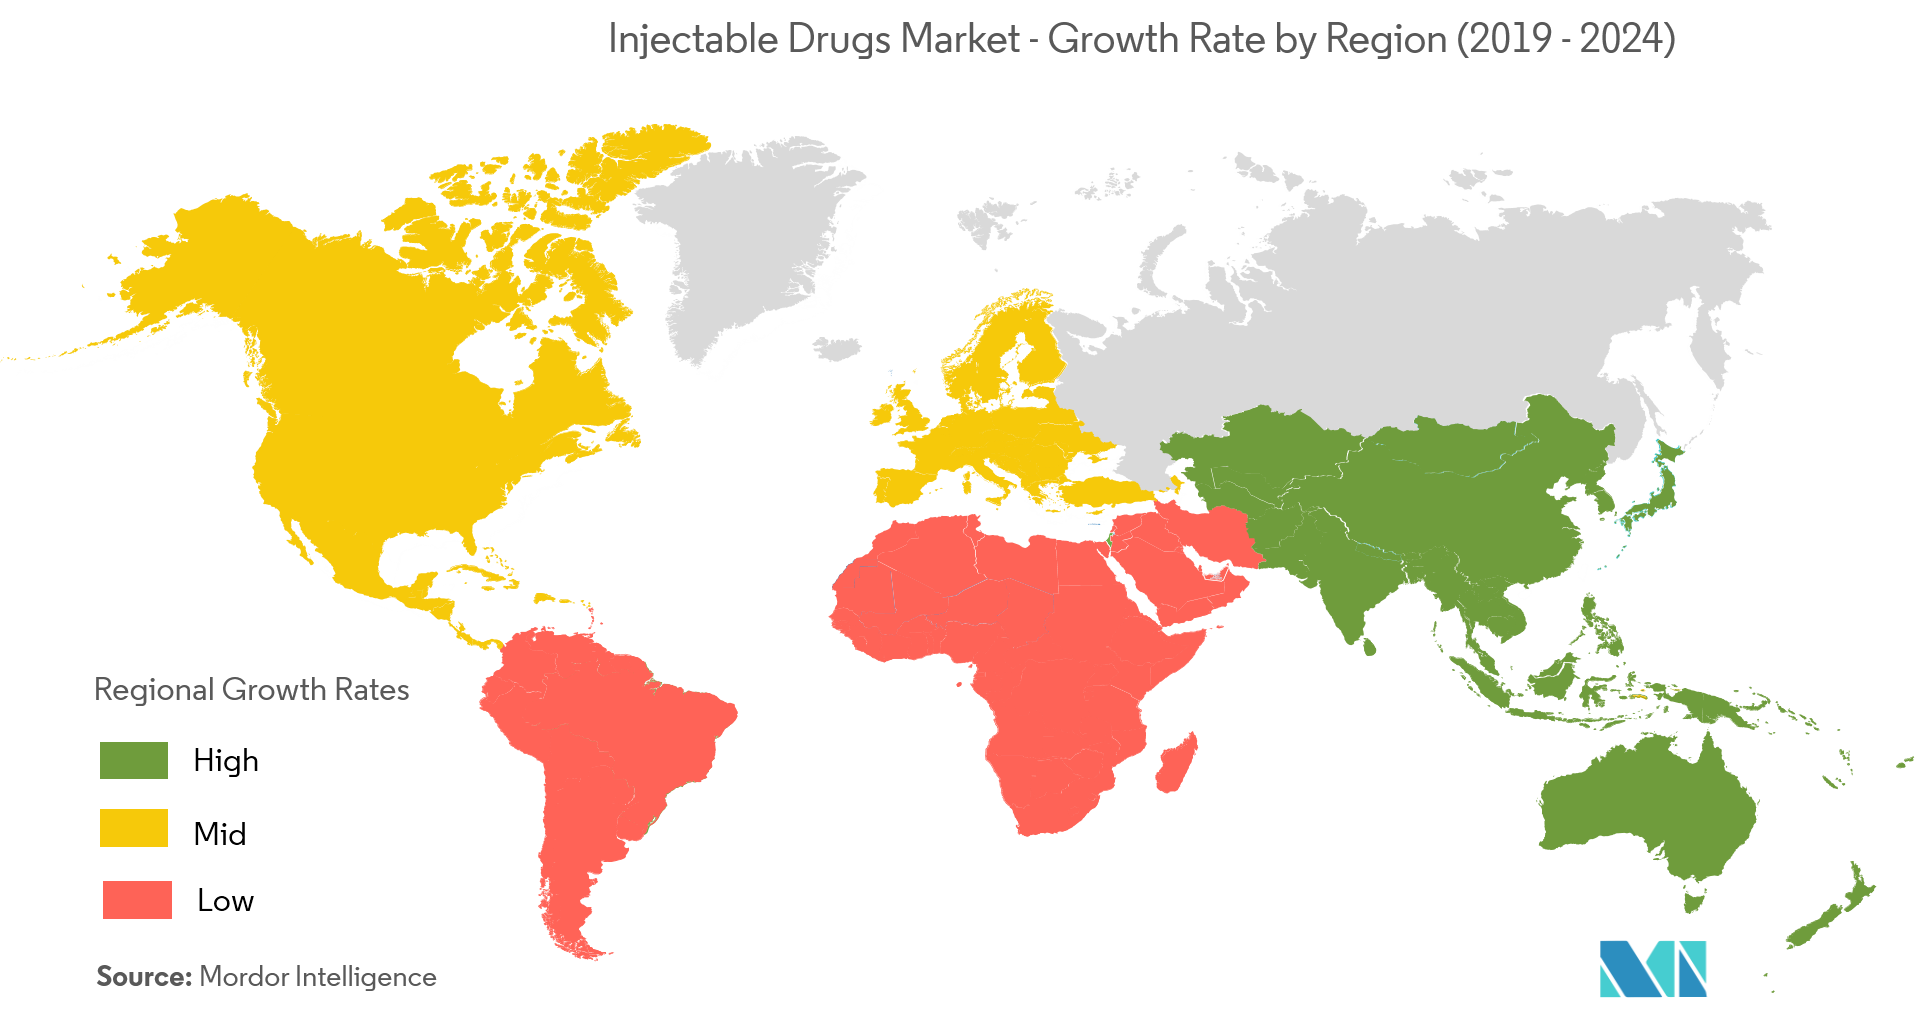 Injectable Drugs Market - 3